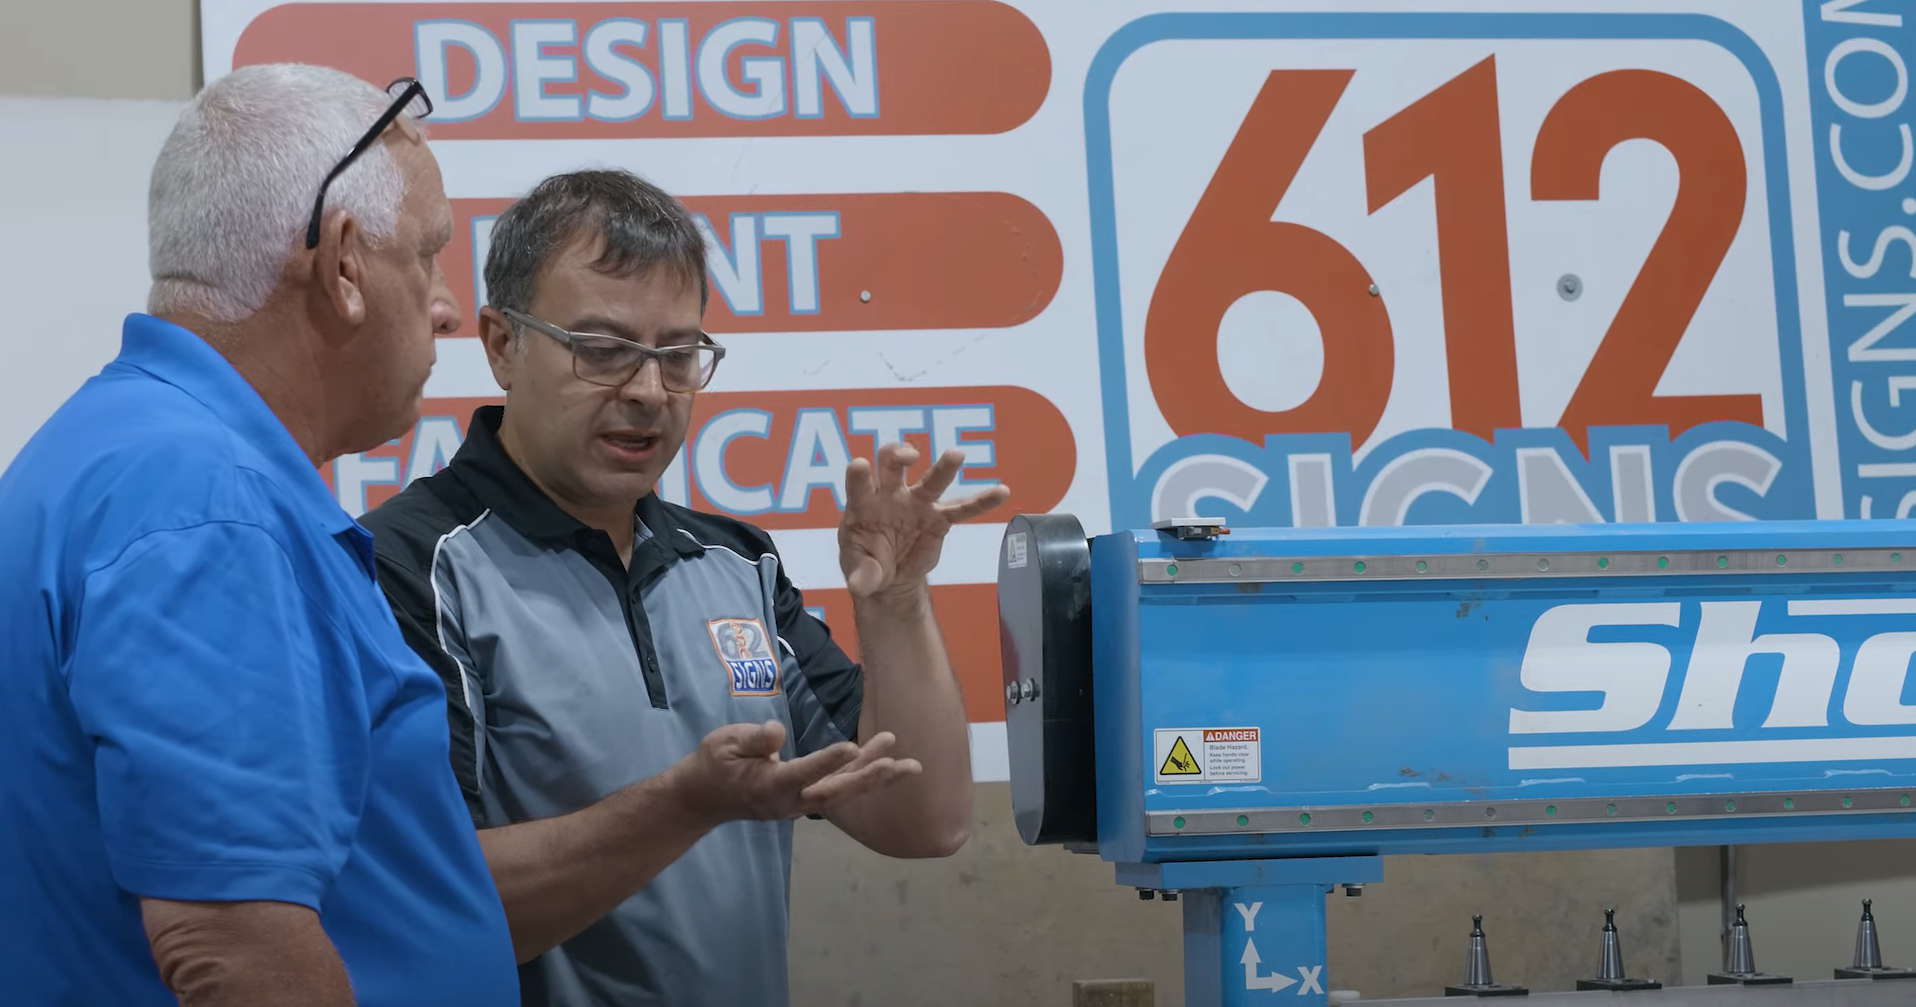 william salvador talking to router bob at 612 signs